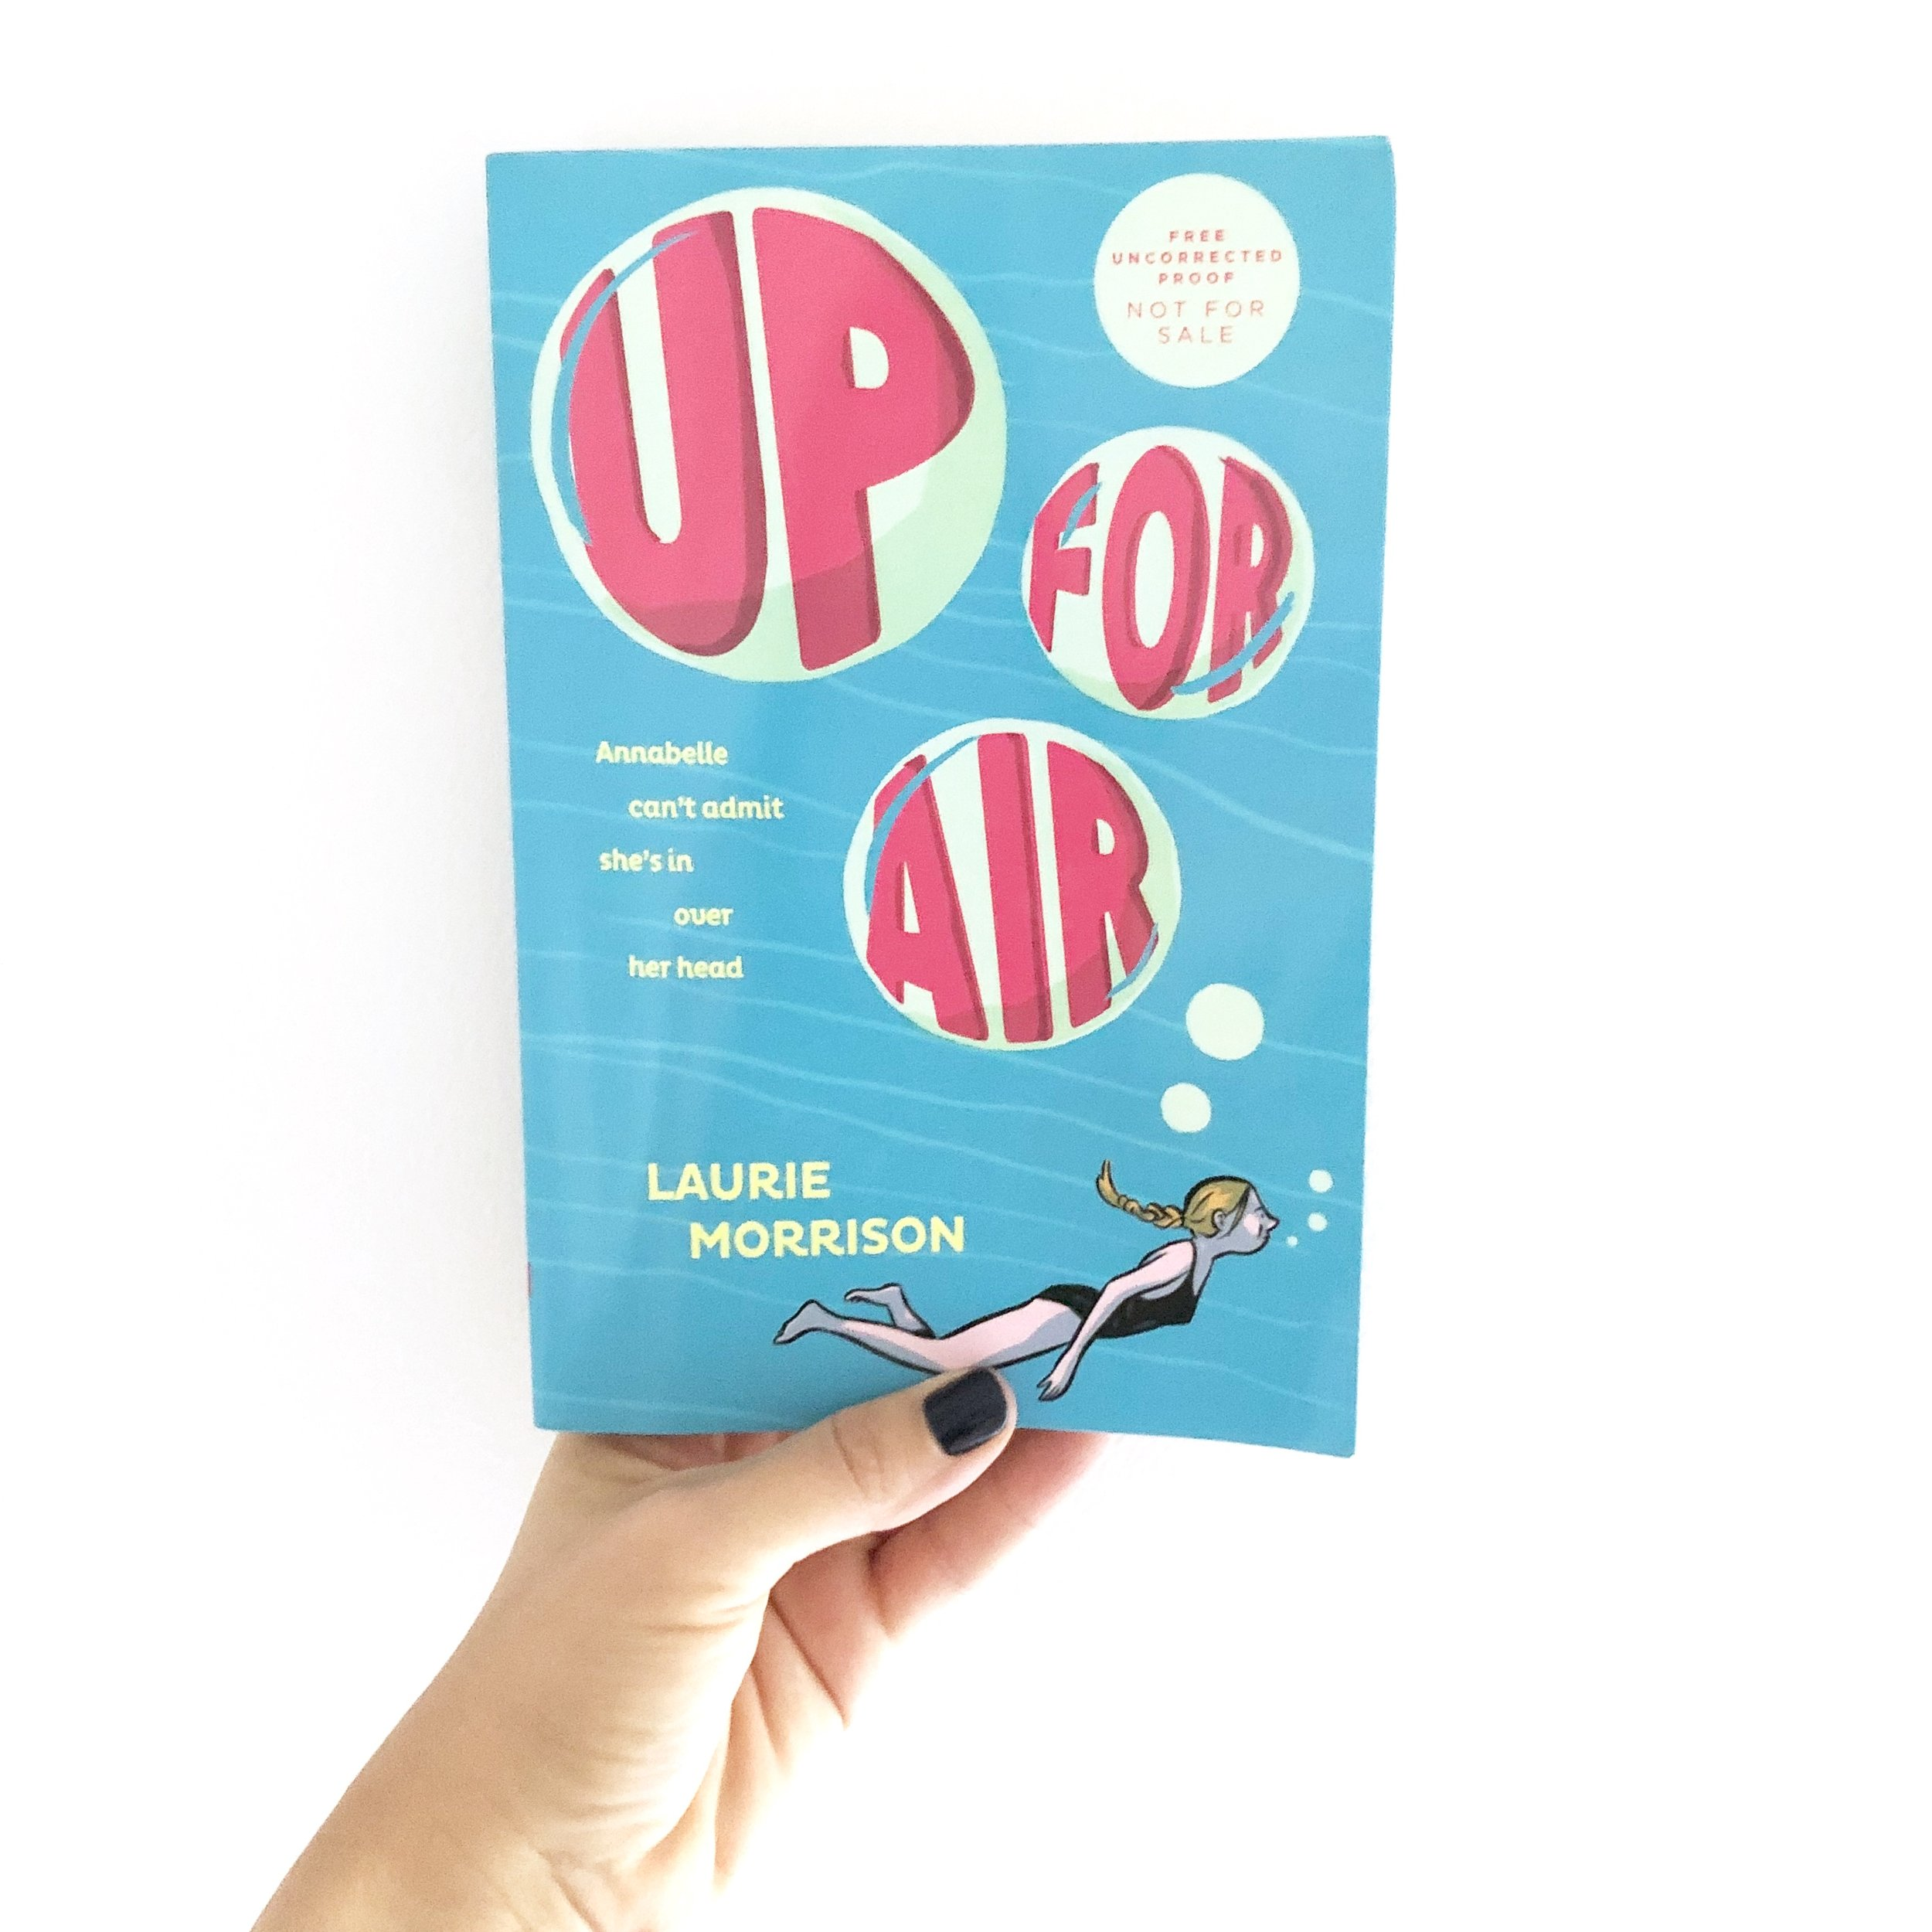 Books for Middle School Girls, Up for Air by Laurie Morrison